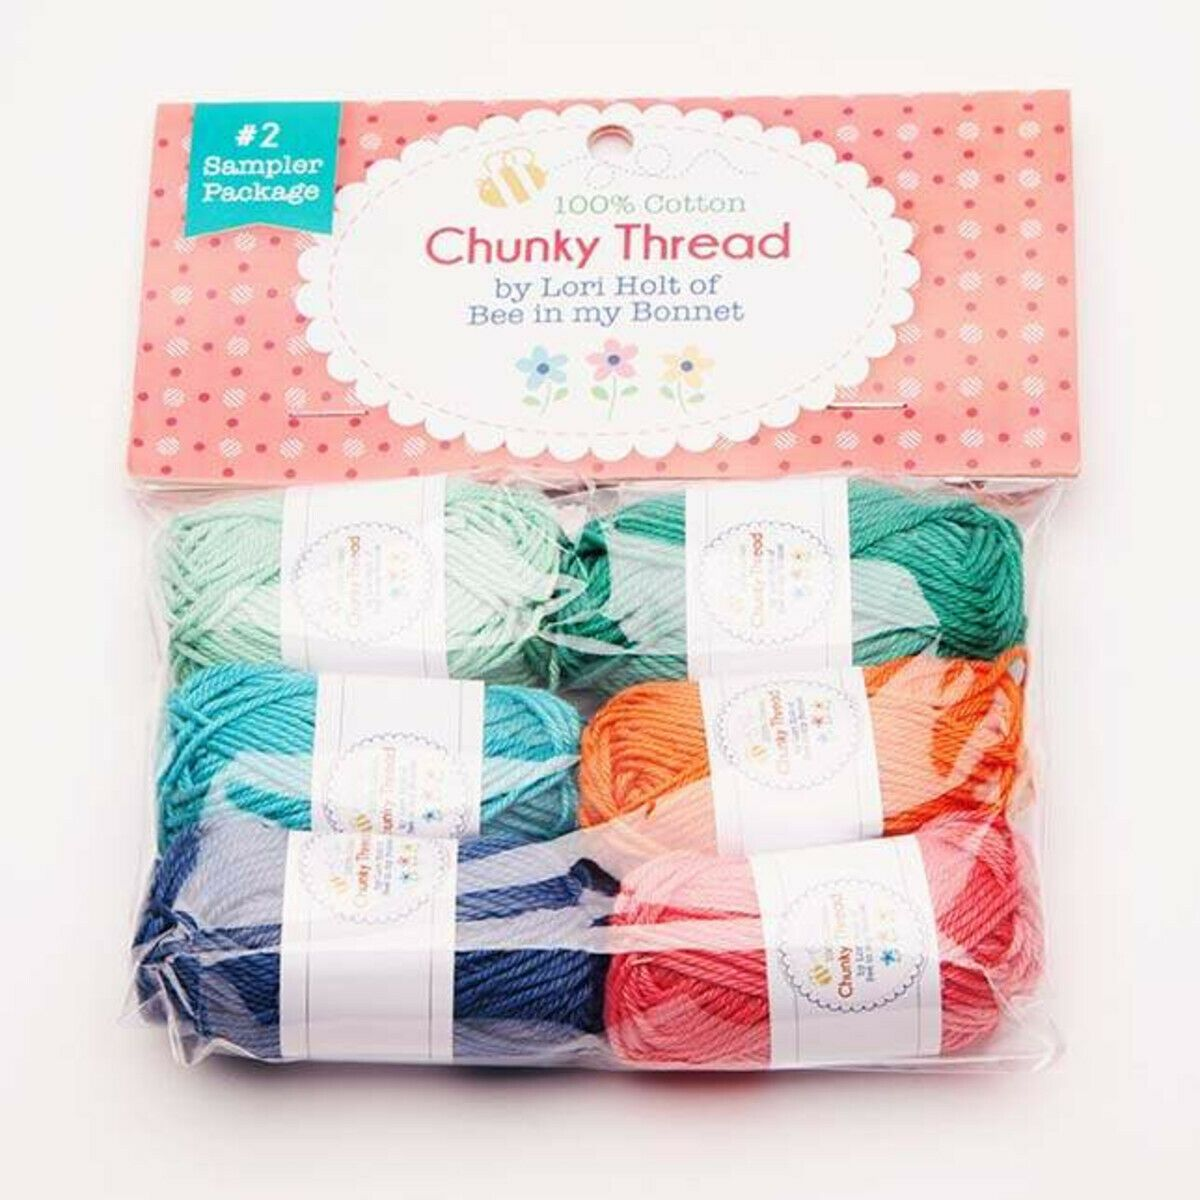 Chunky Thread 100% Cotton #2 Sampler Package by Lori Holt of Bee in my Bonnet